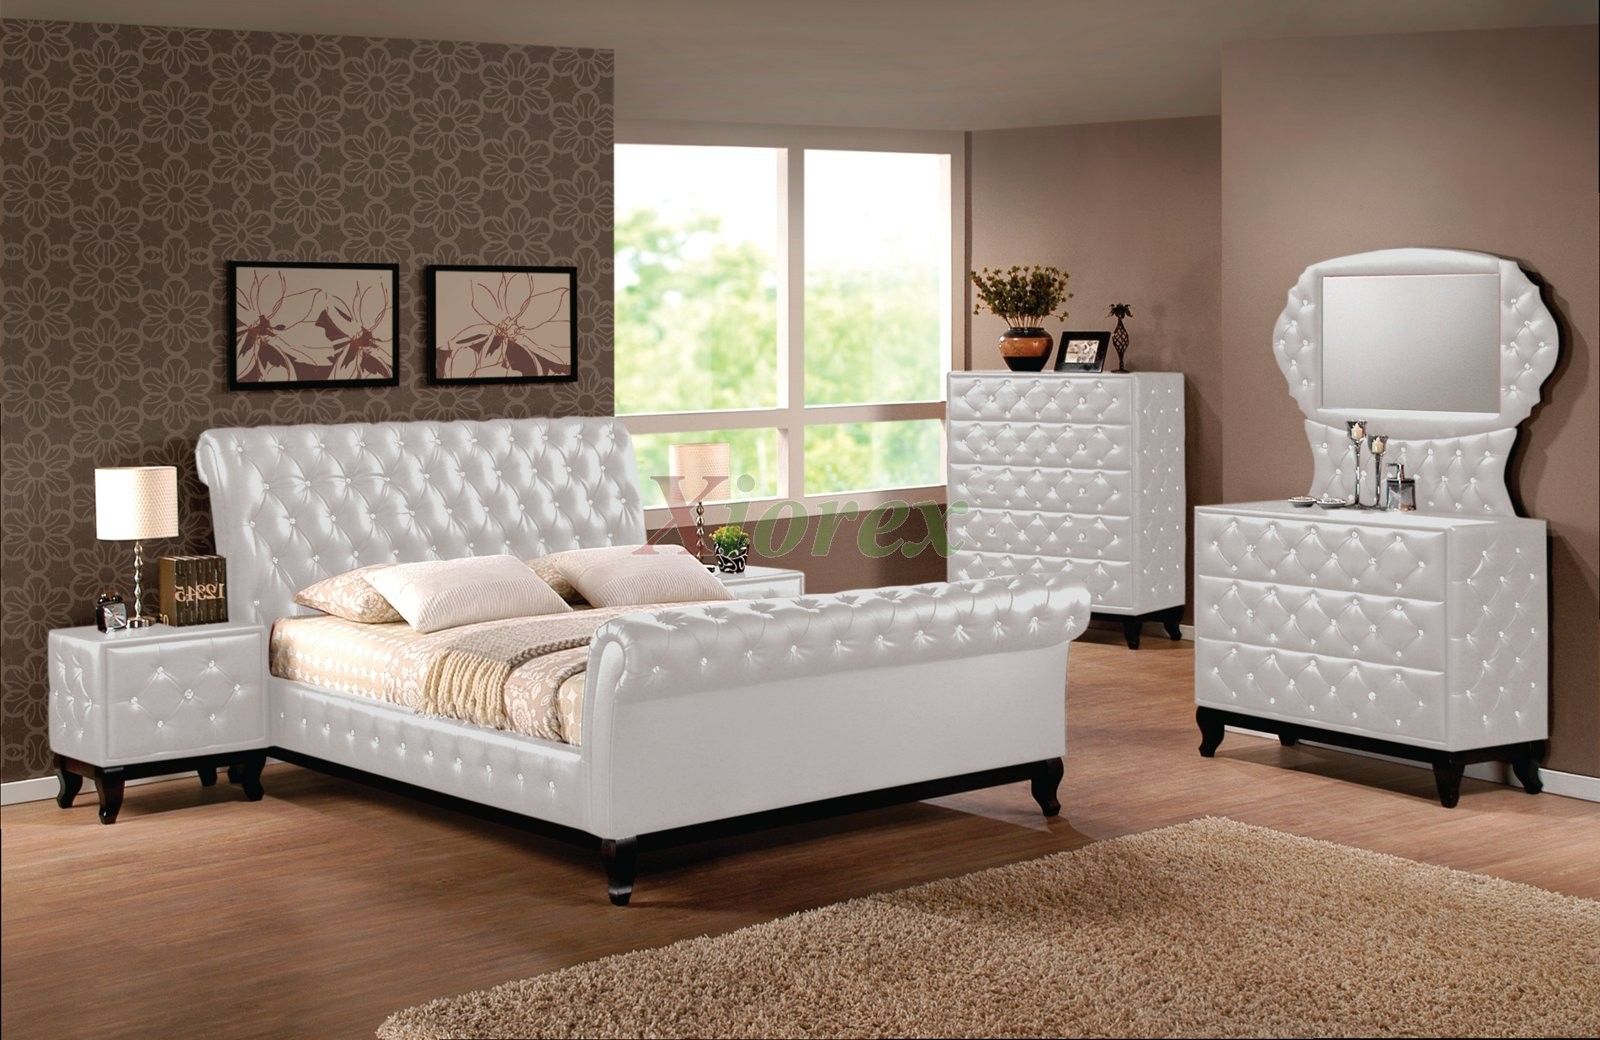 upholstered bedroom furniture upholstered sleigh platform bedroom furniture set 151 xiorex 13696